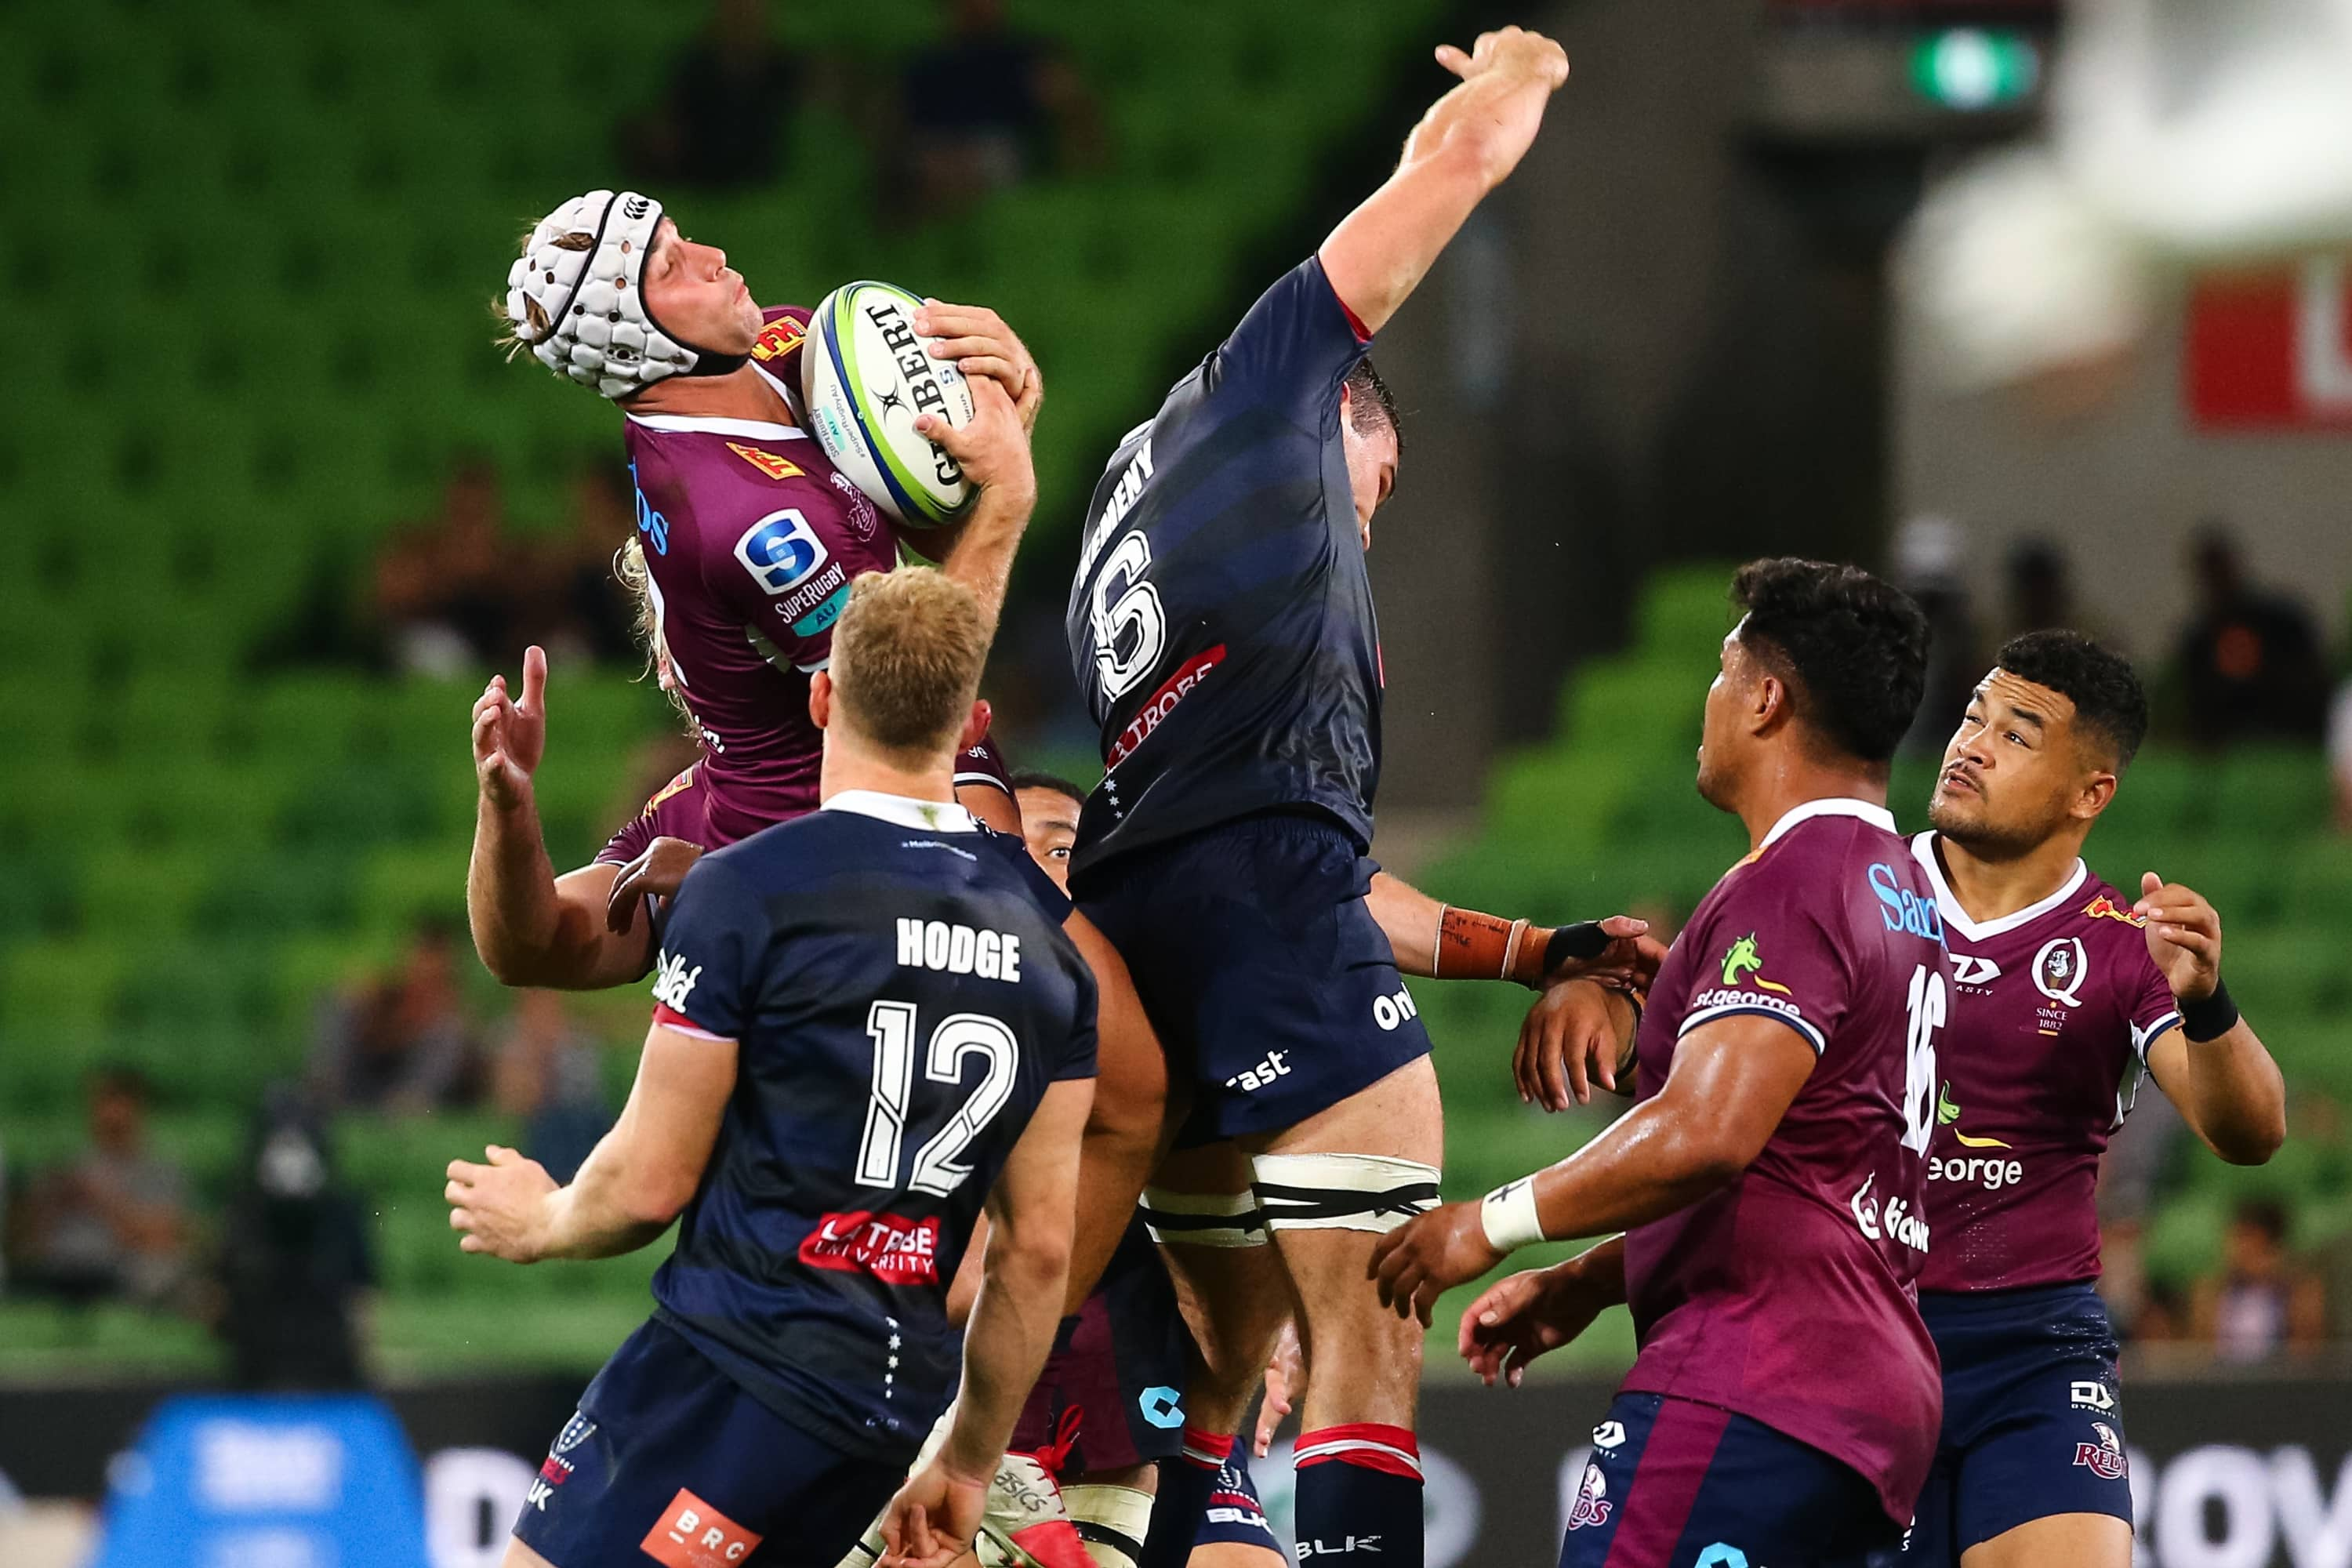 MELBOURNE, AUSTRALIA - APRIL 03: Hamish Stewart of the Queensland Reds catches the ball during the round seven Super Rugby AU match between the Melbourne Rebels and Queensland Reds at AAMI Park on April 03, 2021 in Melbourne, Australia. (Photo by Speed Media/Icon Sportswire)